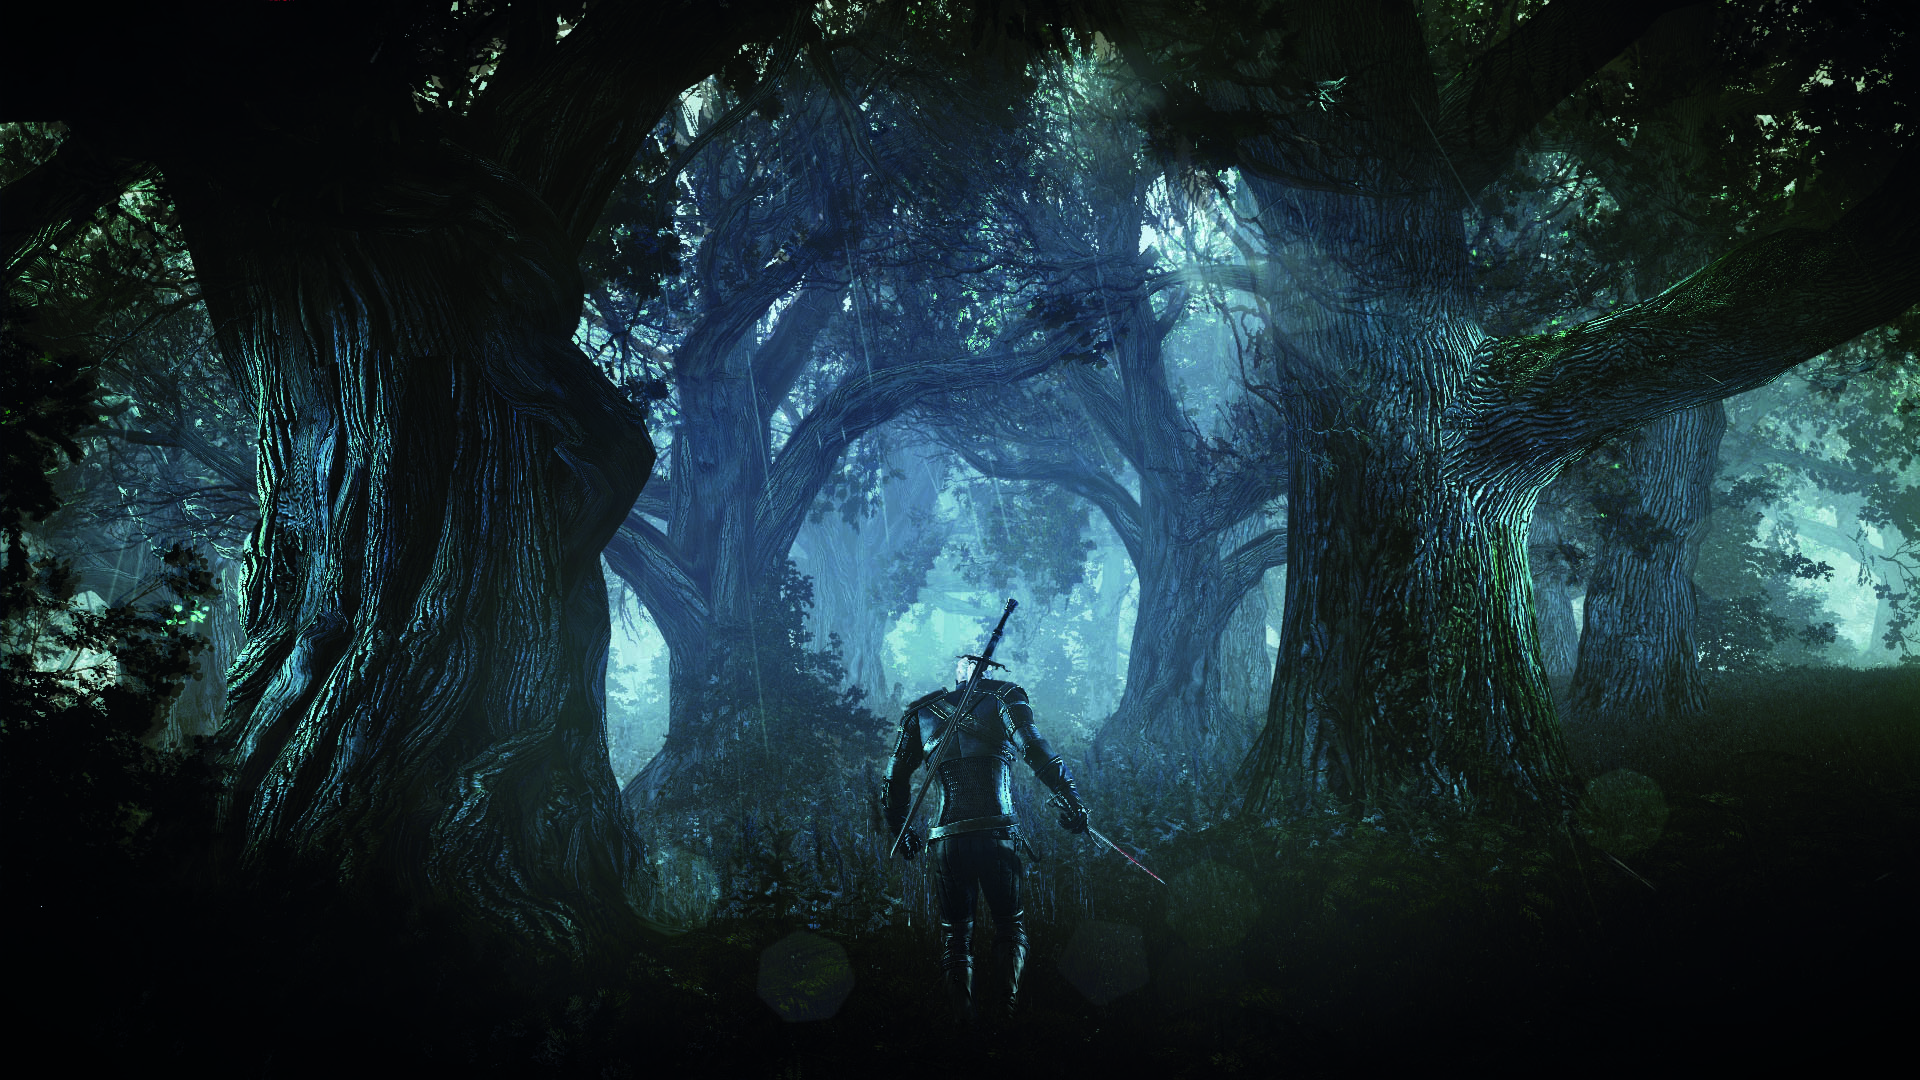 6262_The_Witcher_3_Wild_Hunt_Geralt_In_The_Forest.jpg